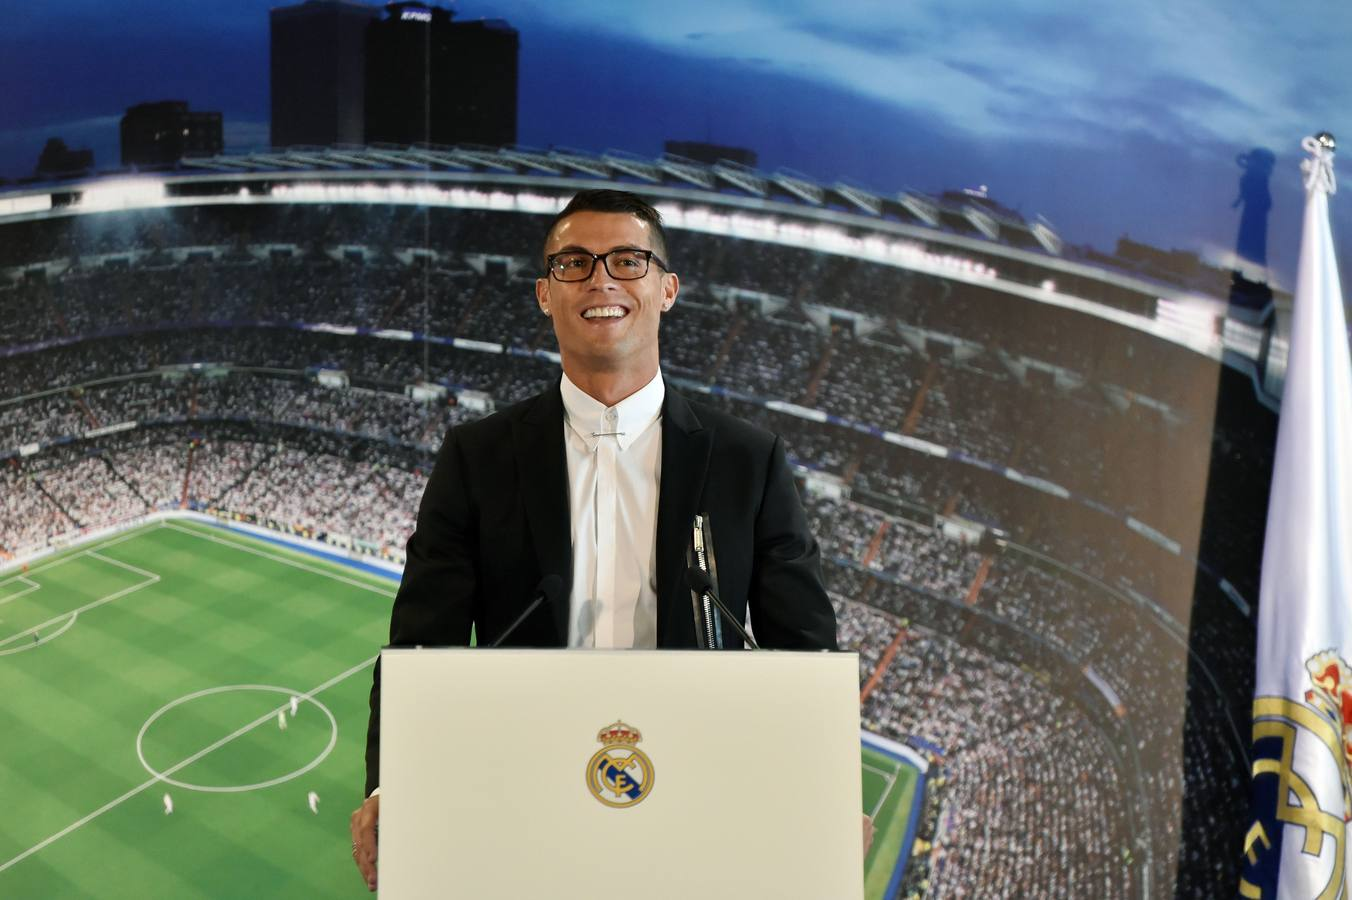 La renovación de Cristiano, en imágenes